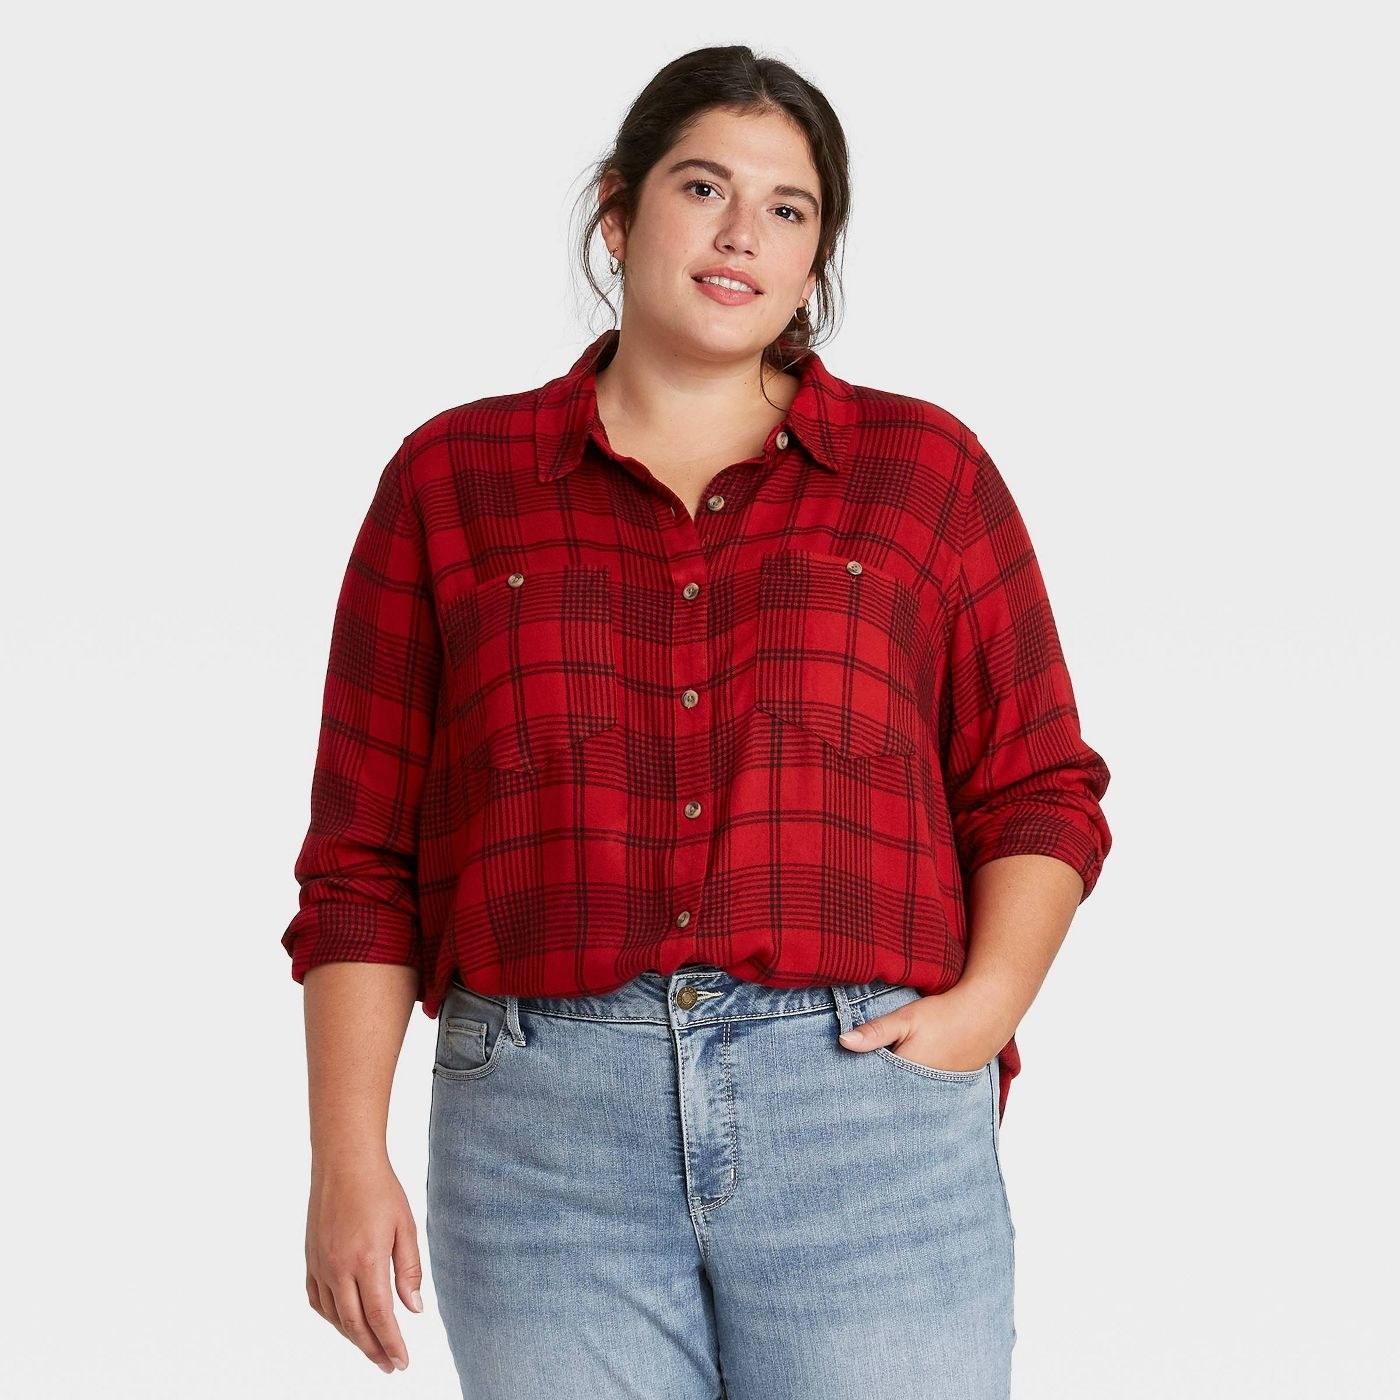 Model in red plaid button-down top